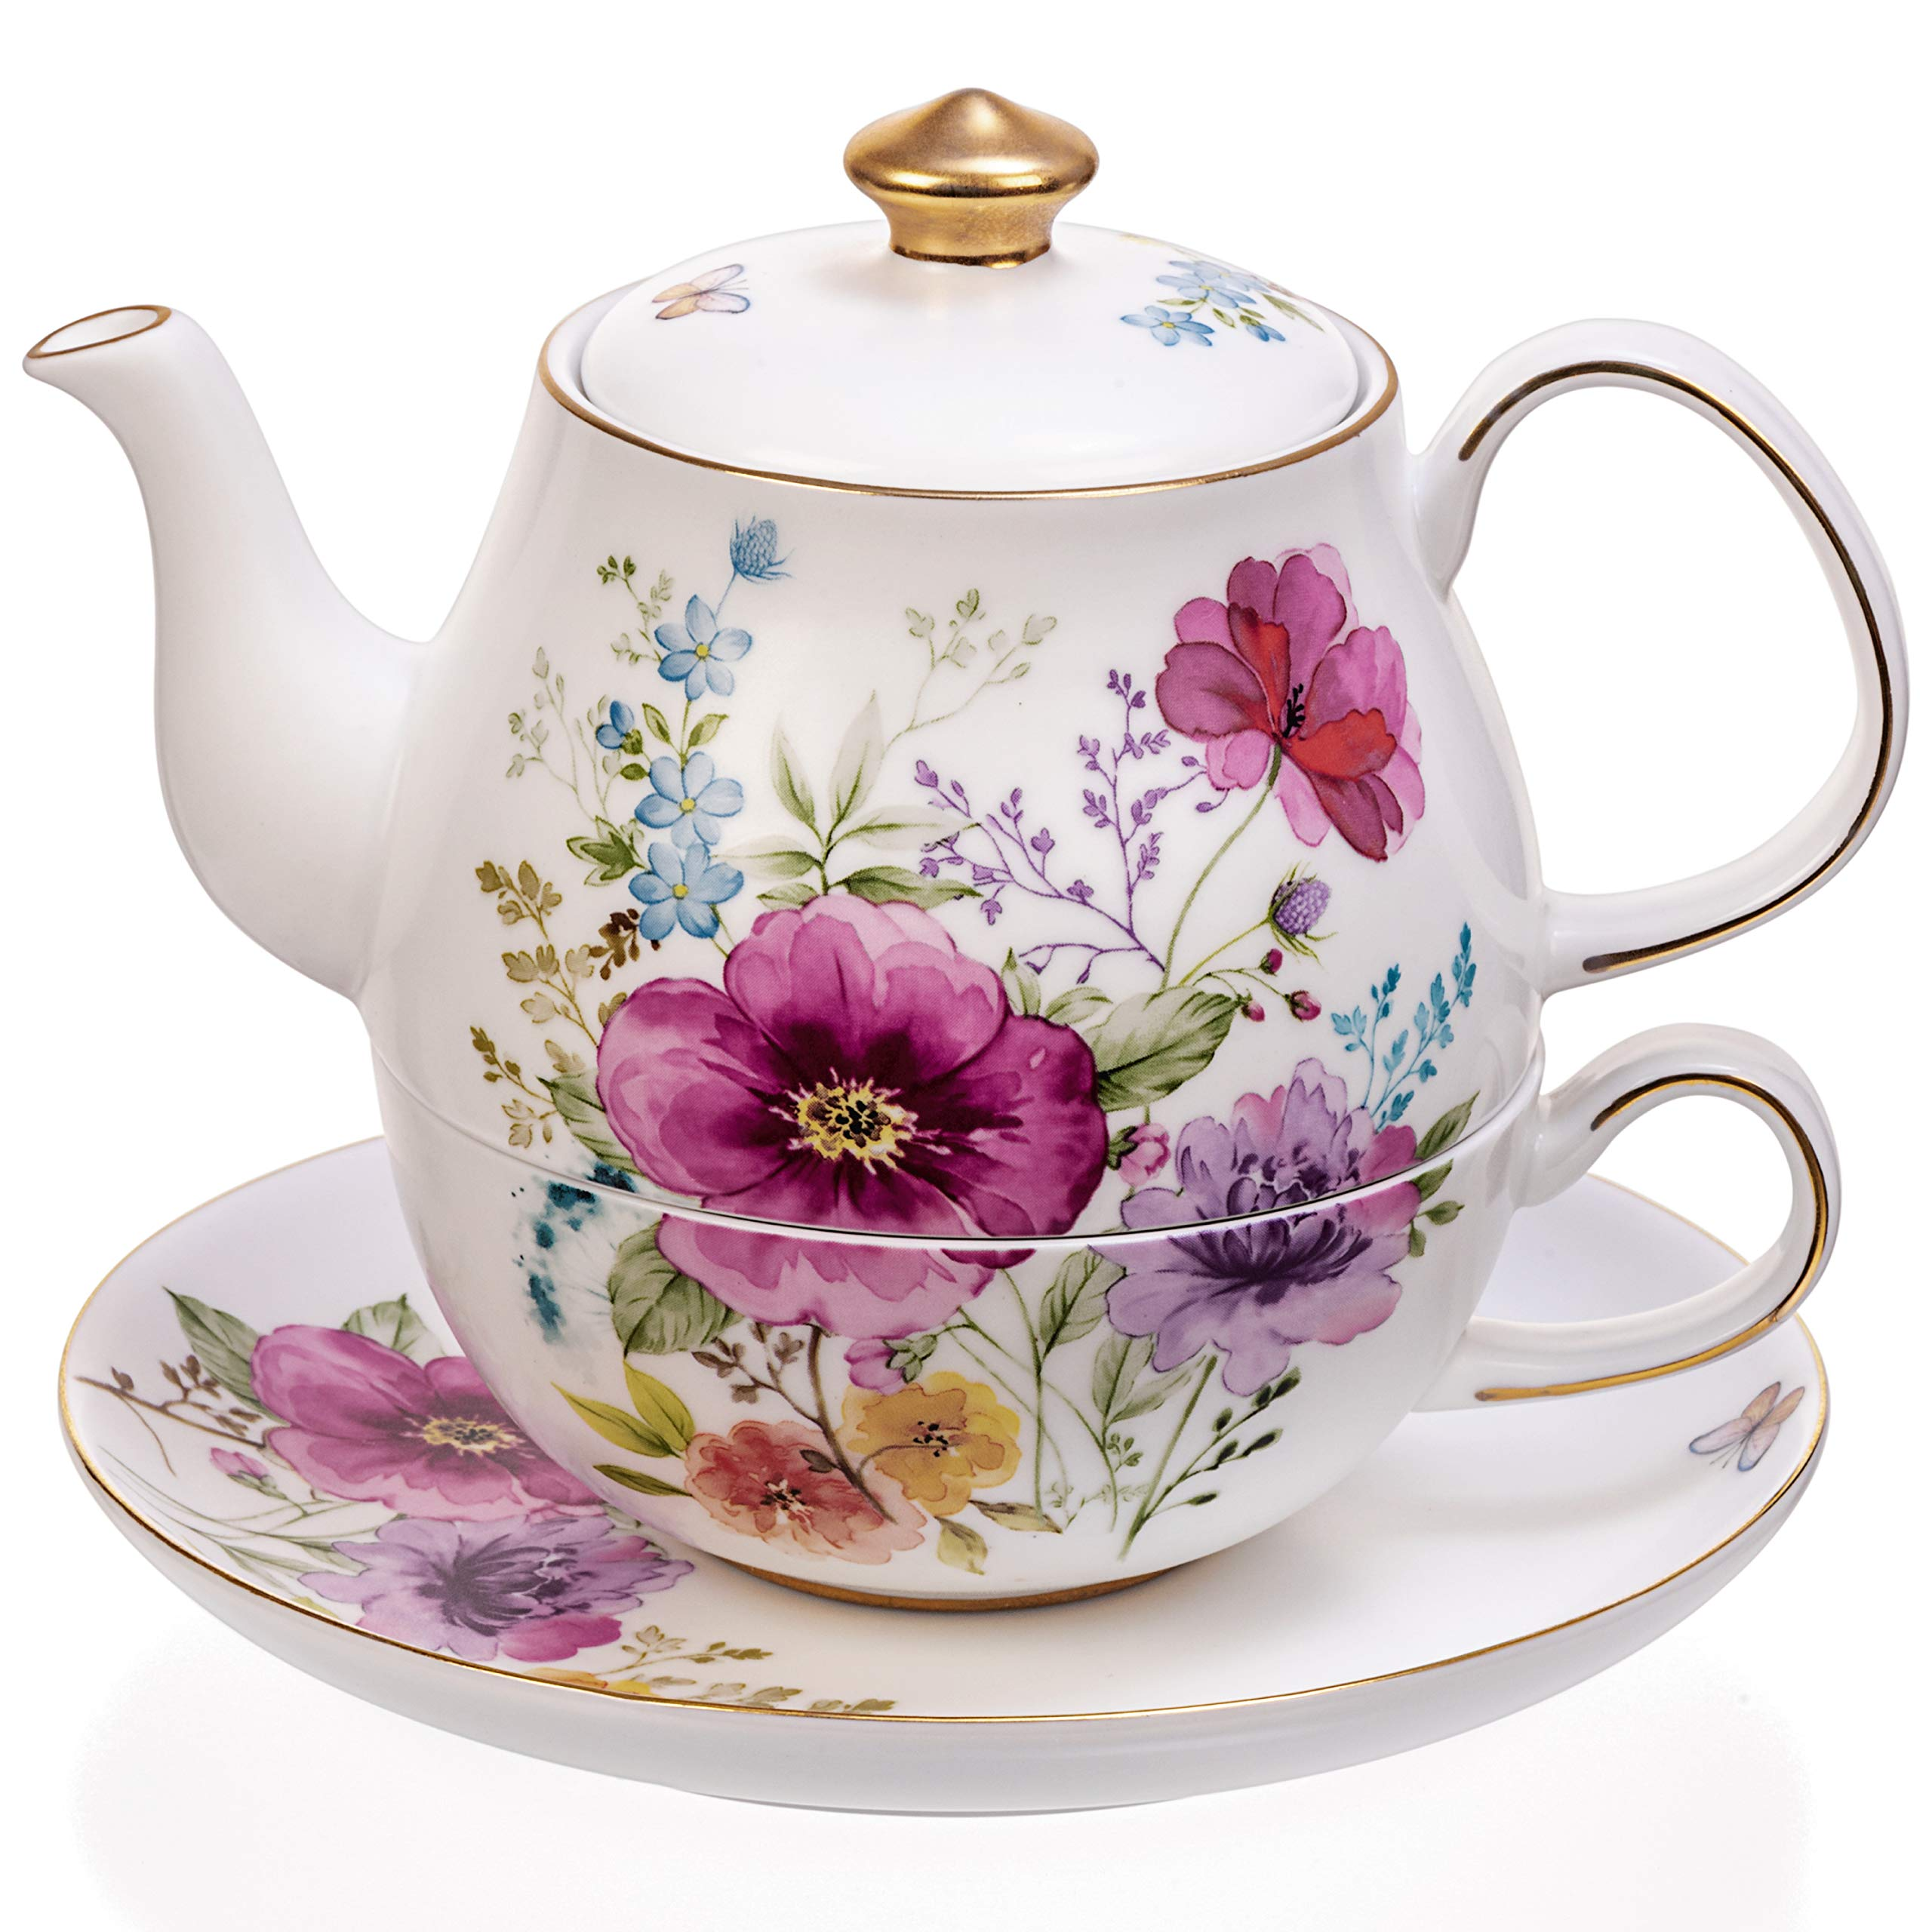 Tealyra - Tea for One Porcelain Flowers and Gold Trim Set - Teapot 17-ounce Cup and Saucers - Real Gold Plated - Flower English Modern Style - Bee Style Spout Filter for Loose Leaf Tea